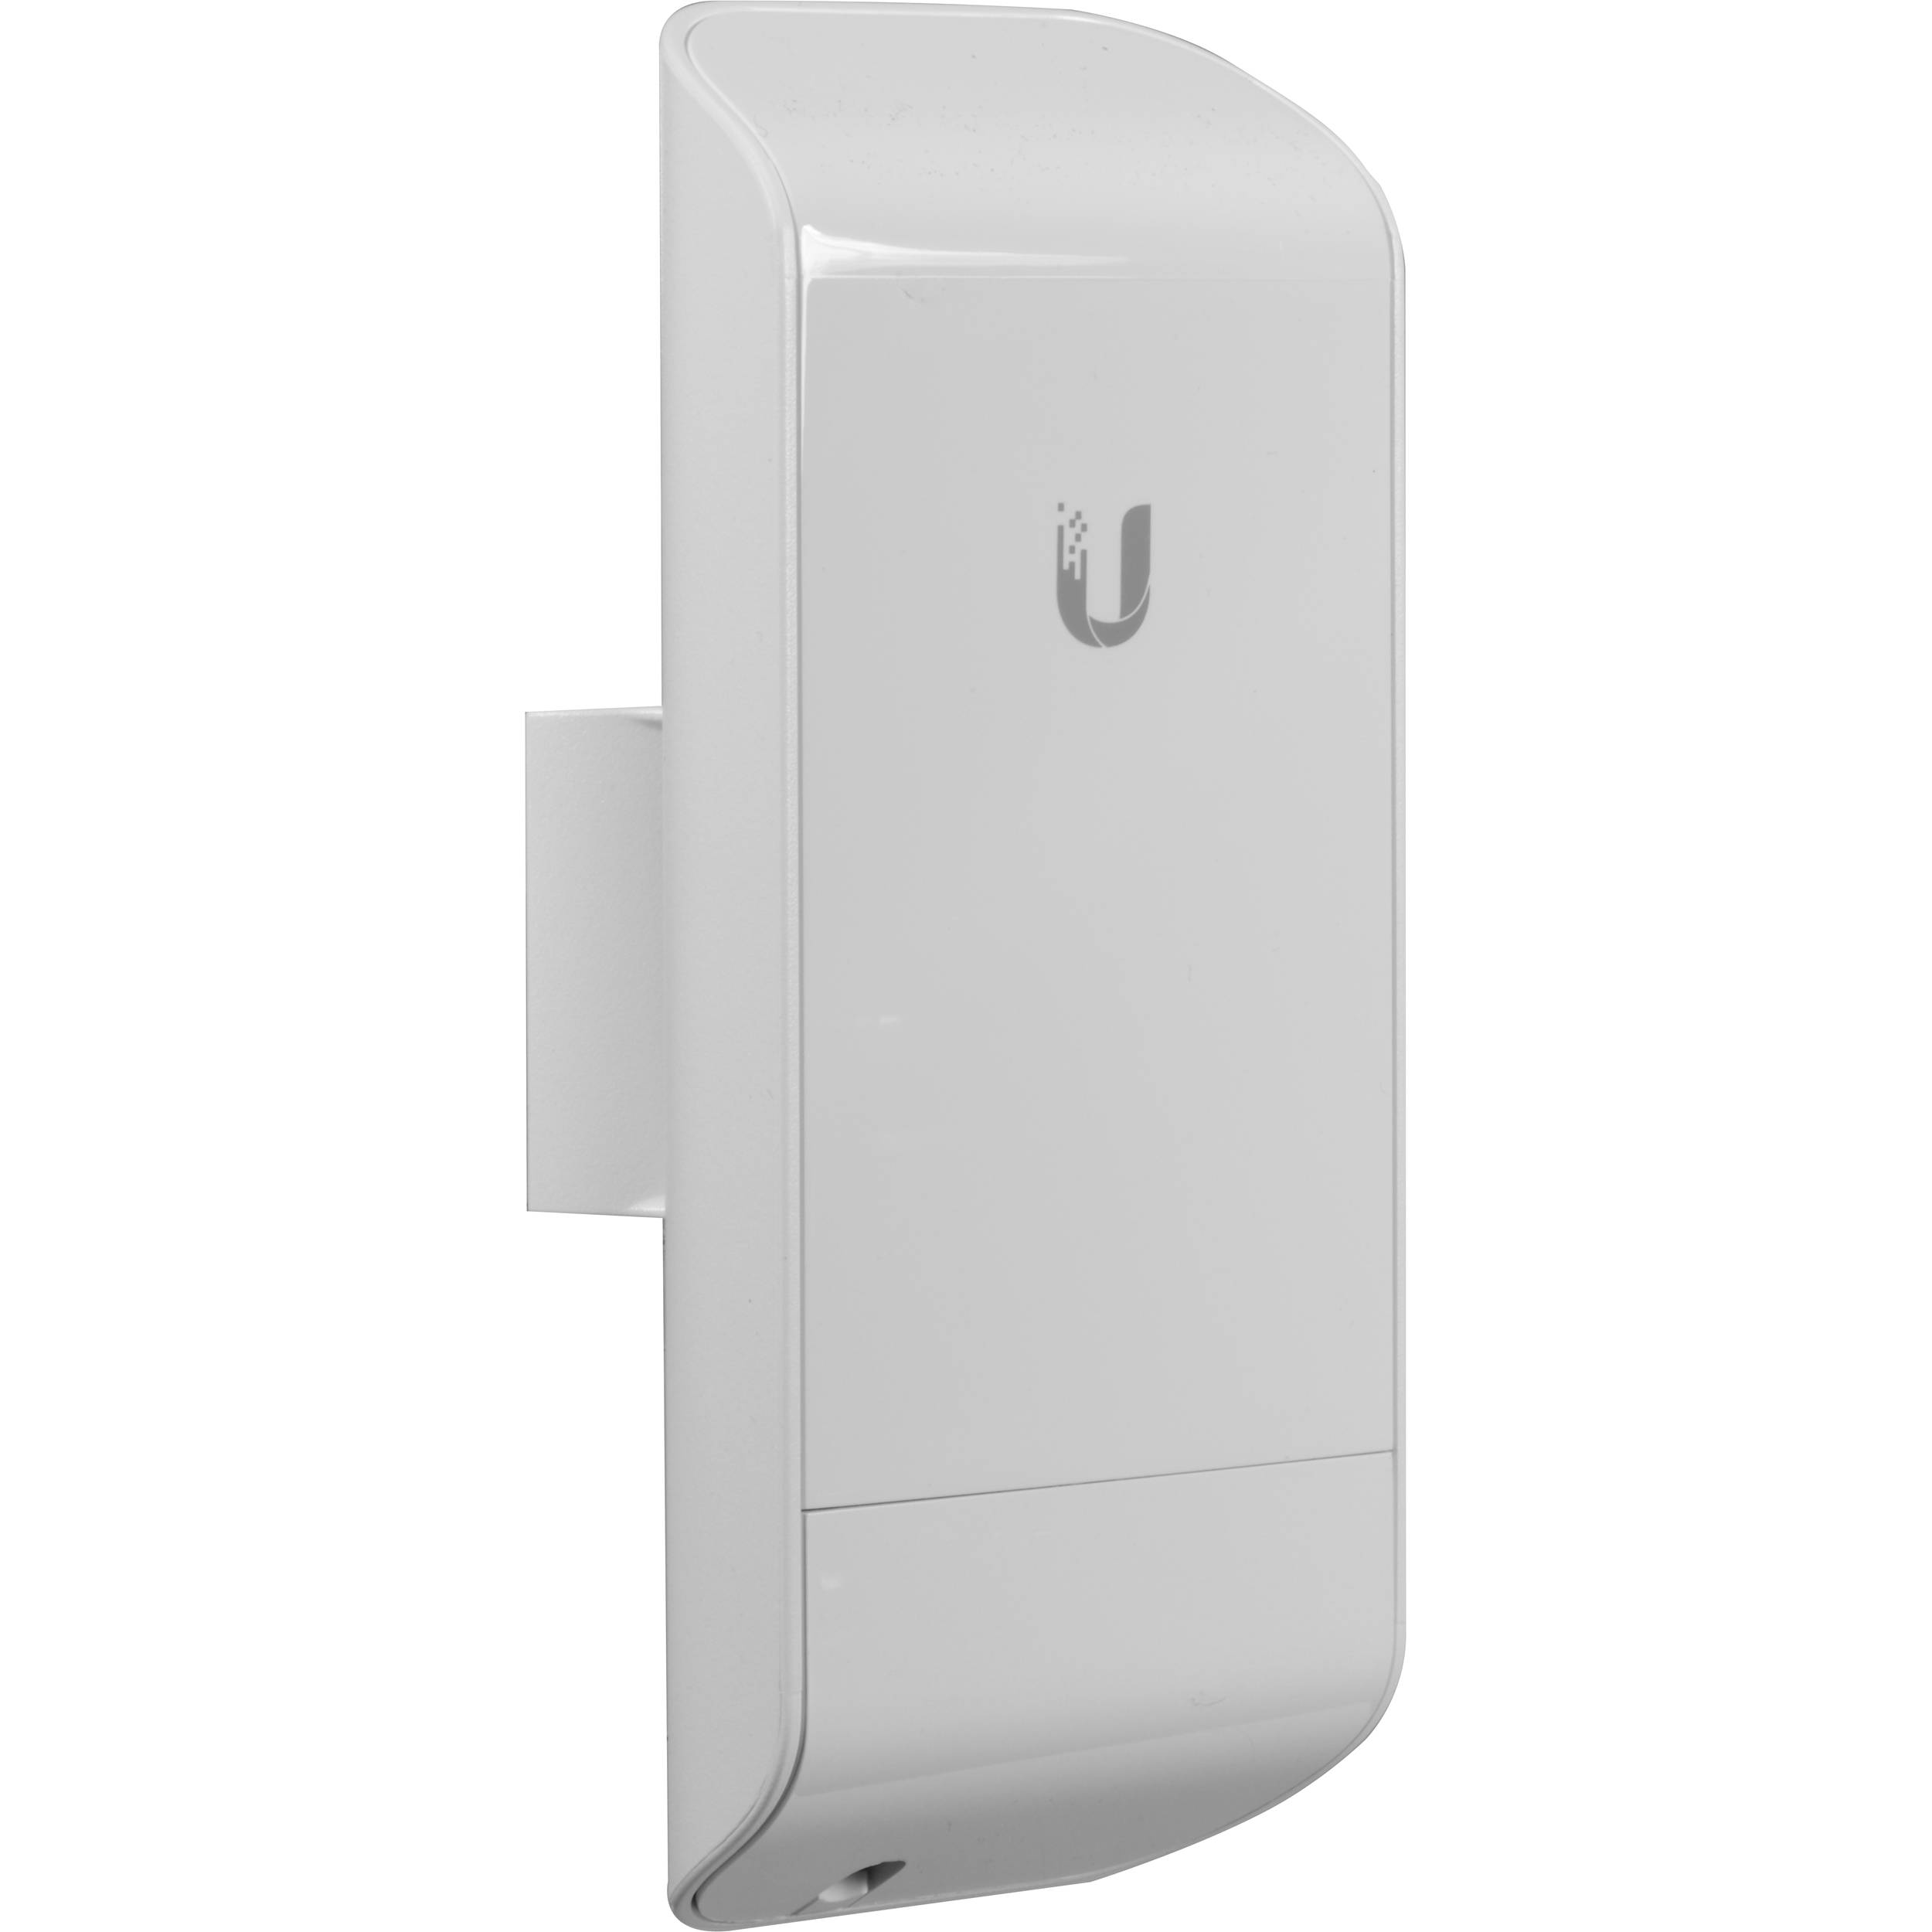 UBIQUITI LOCOM5 ACCESS POINT DRIVERS FOR MAC